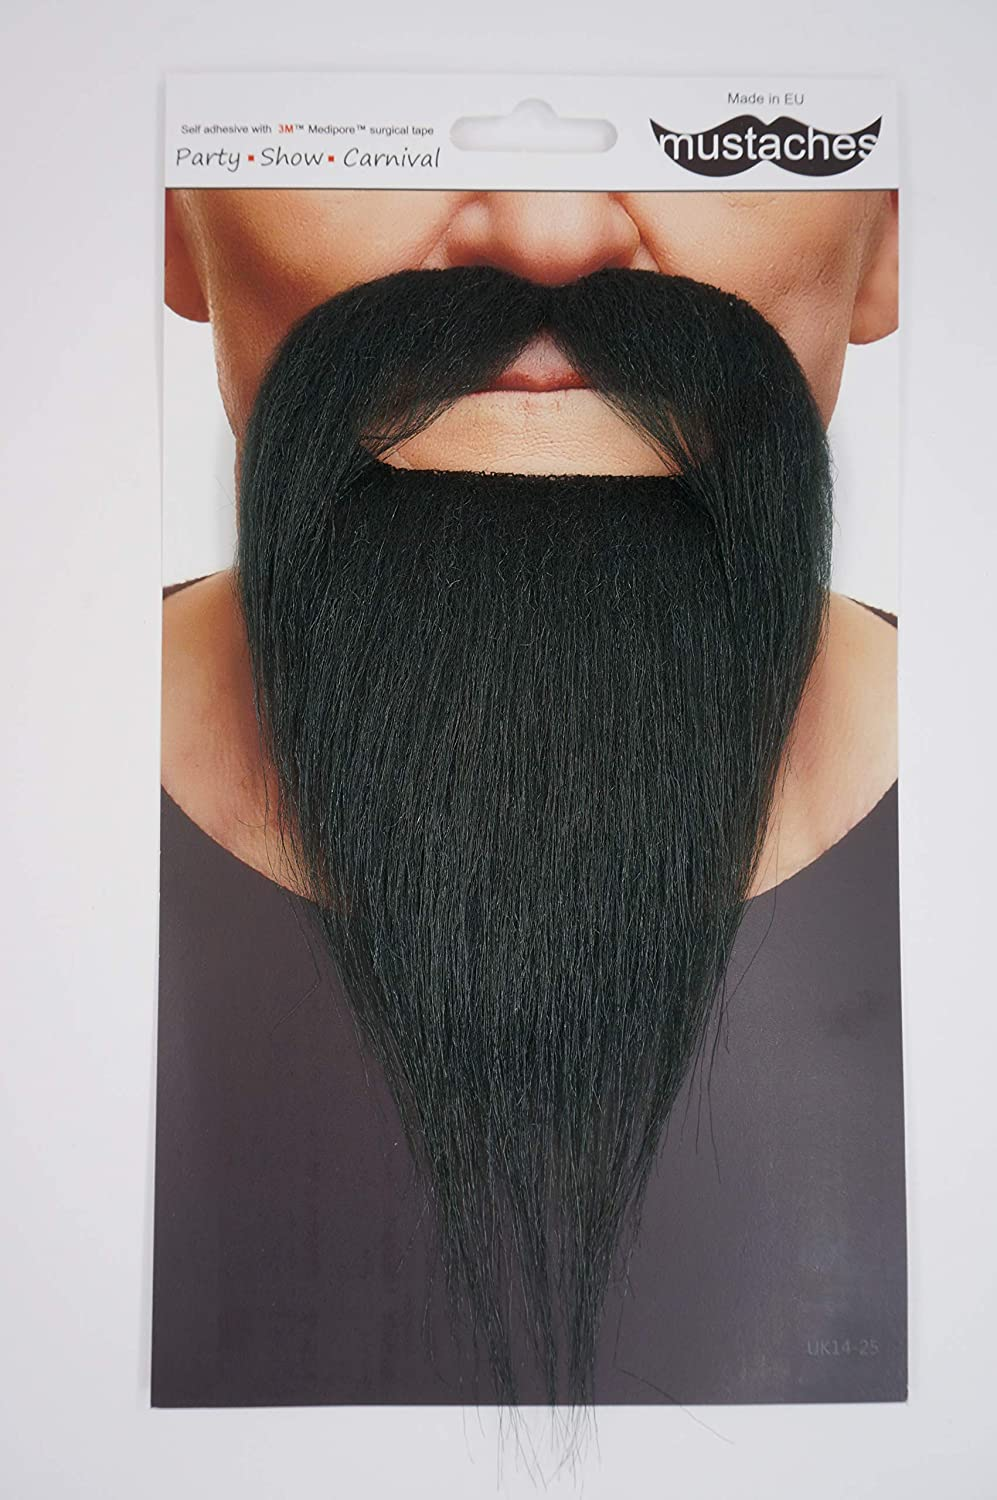 Costume Accessory for Adults Ducktail Fake Beard Novelty False Facial Hair Mustaches Self Adhesive